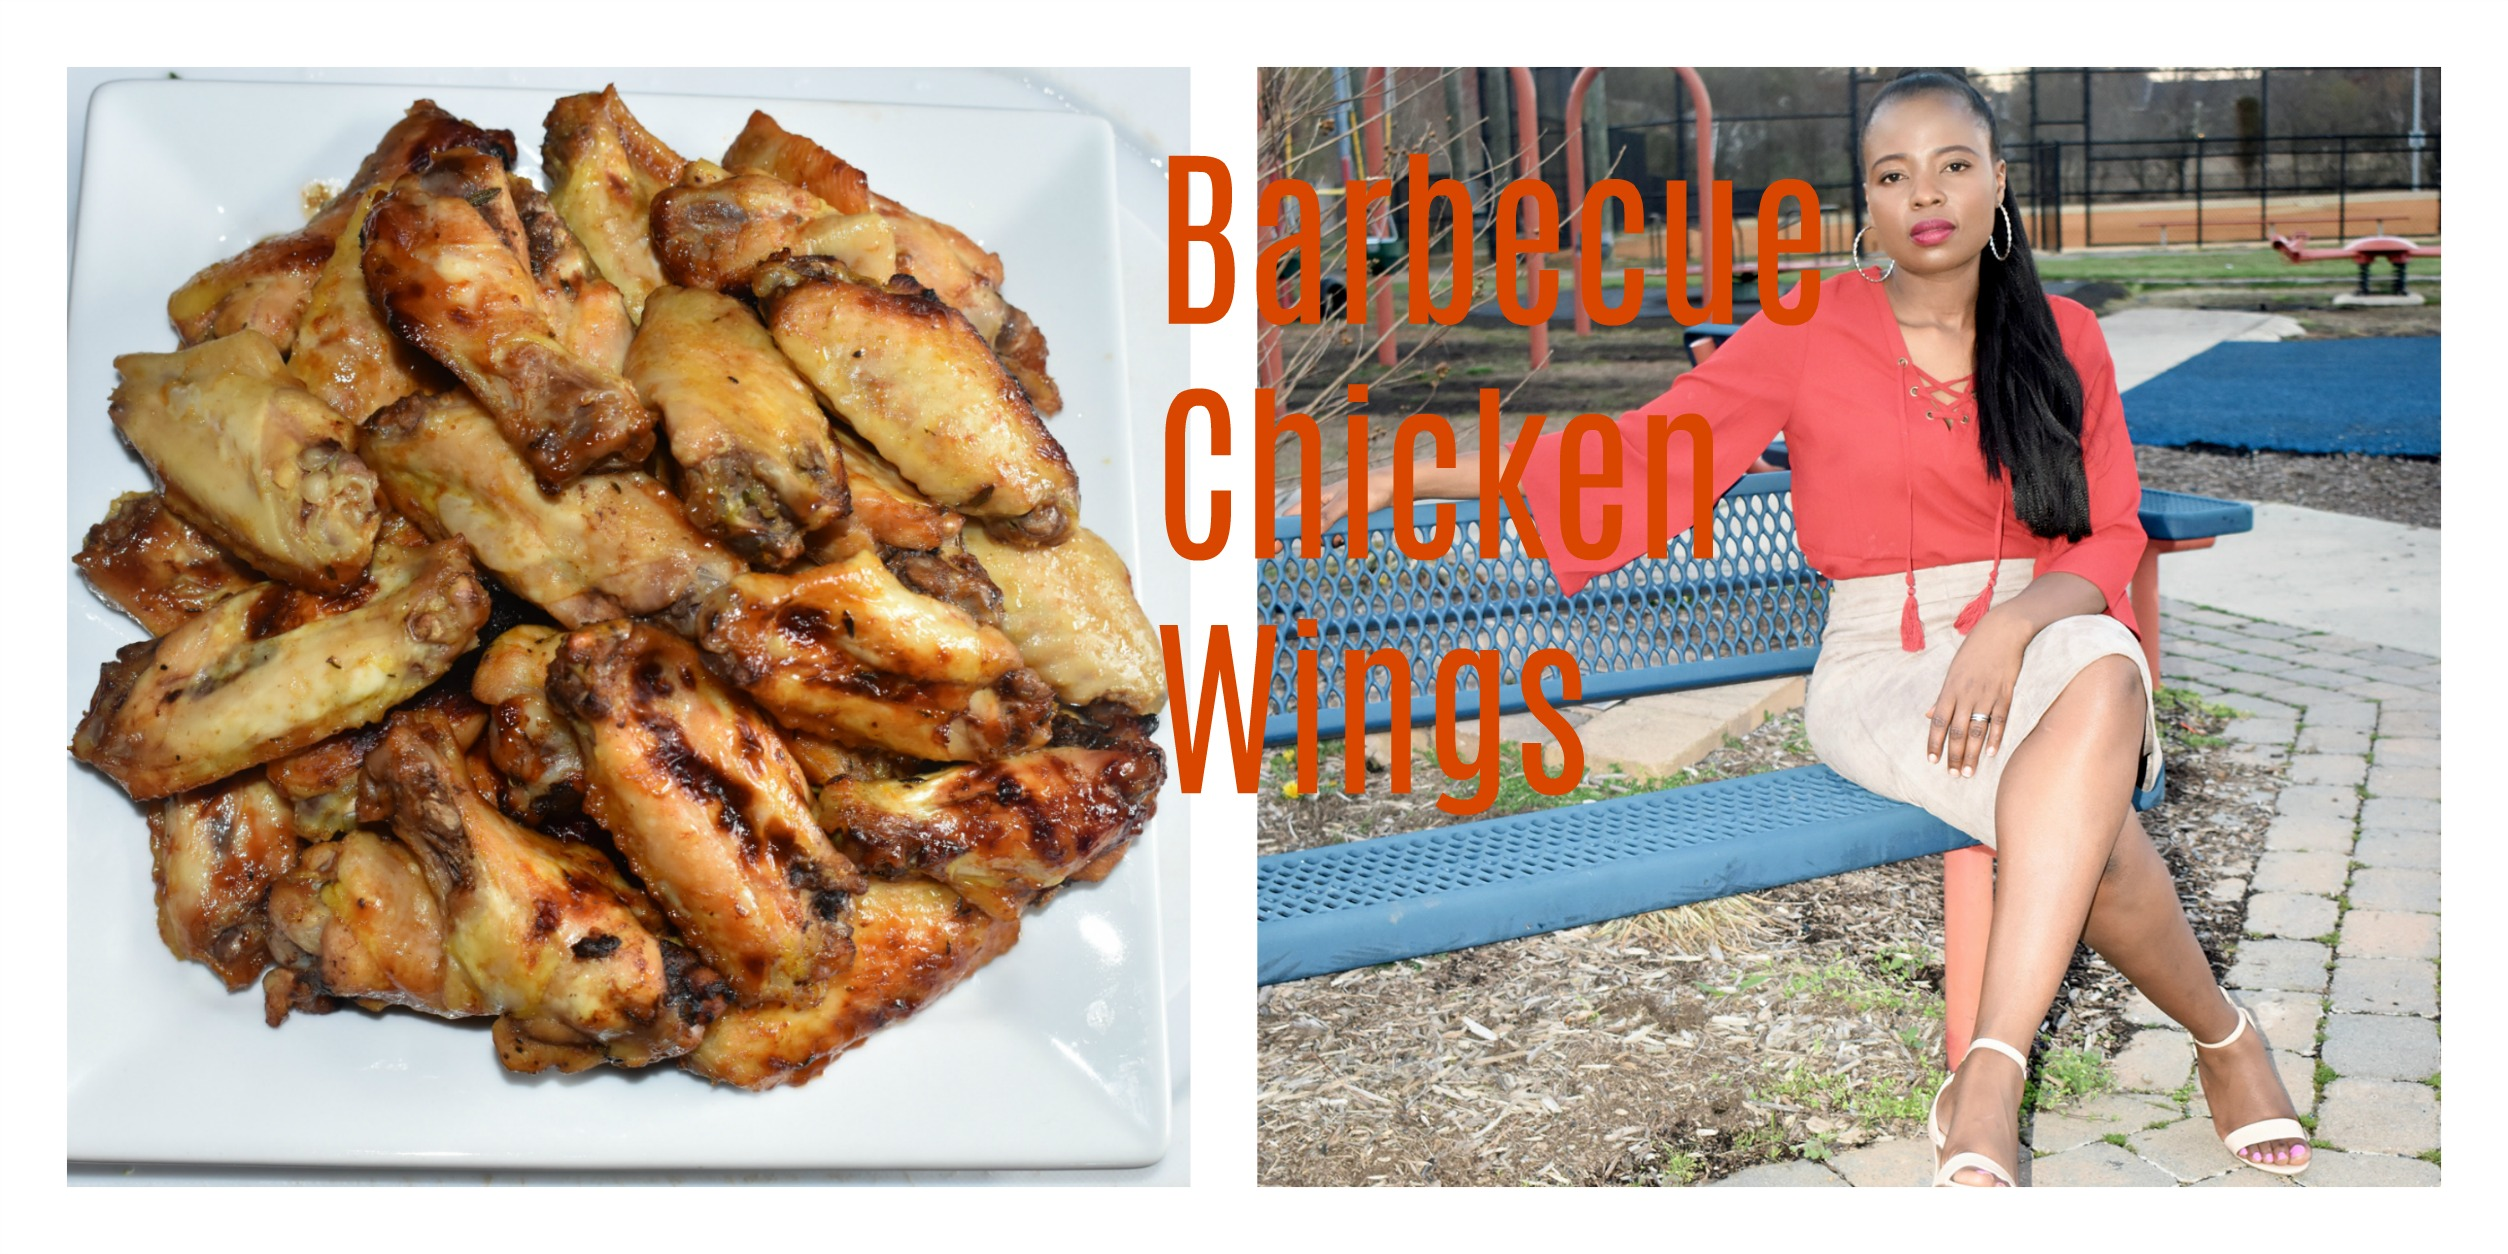 Wings- Delicious barbecue chicken wings graphic